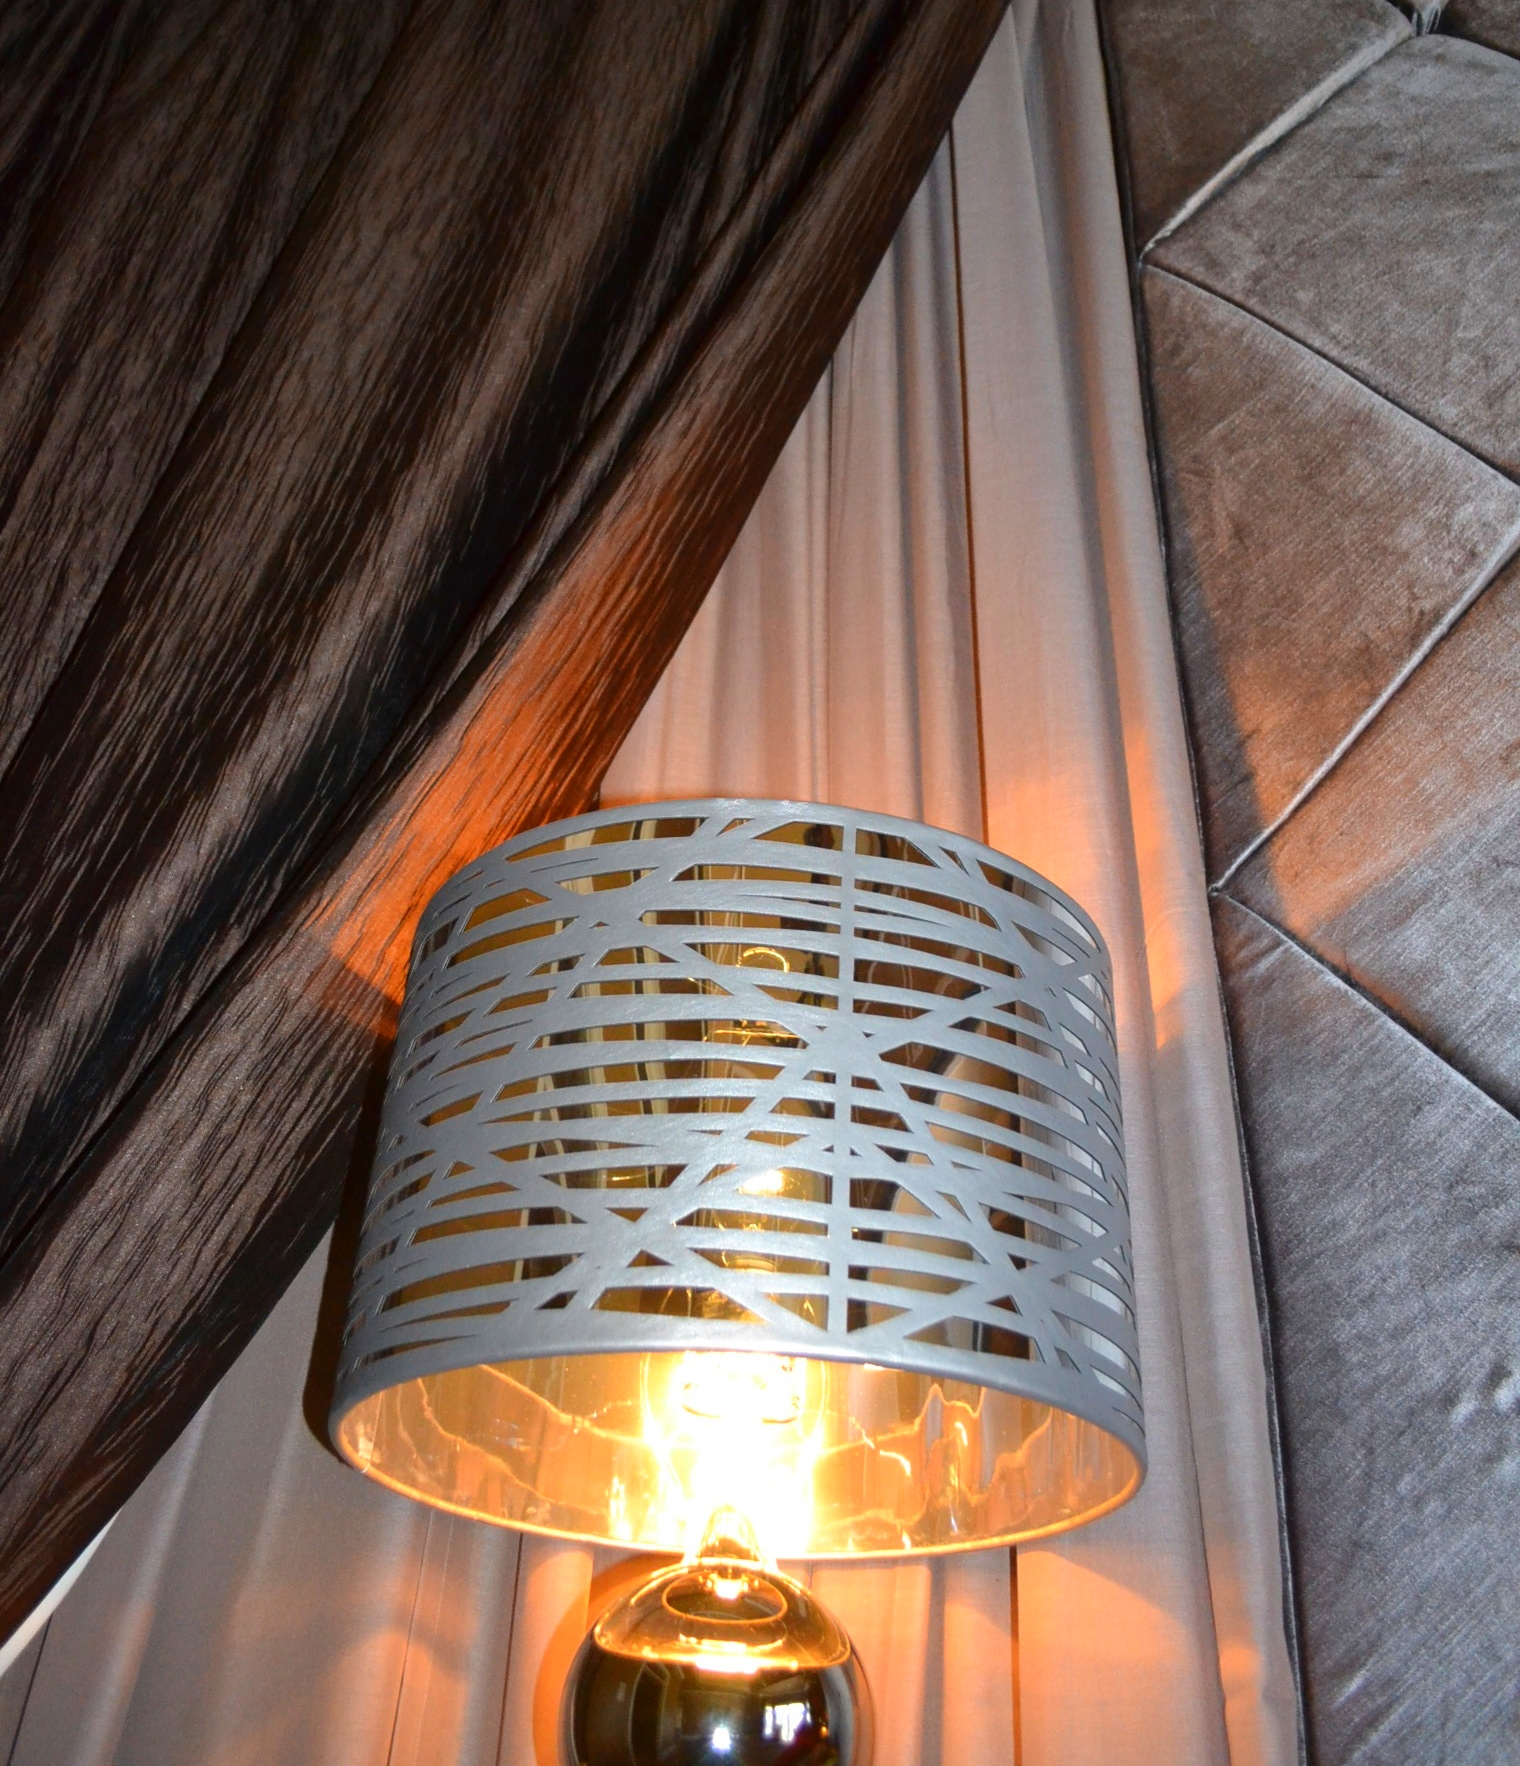 Translucent lampshade with leather cutout straps